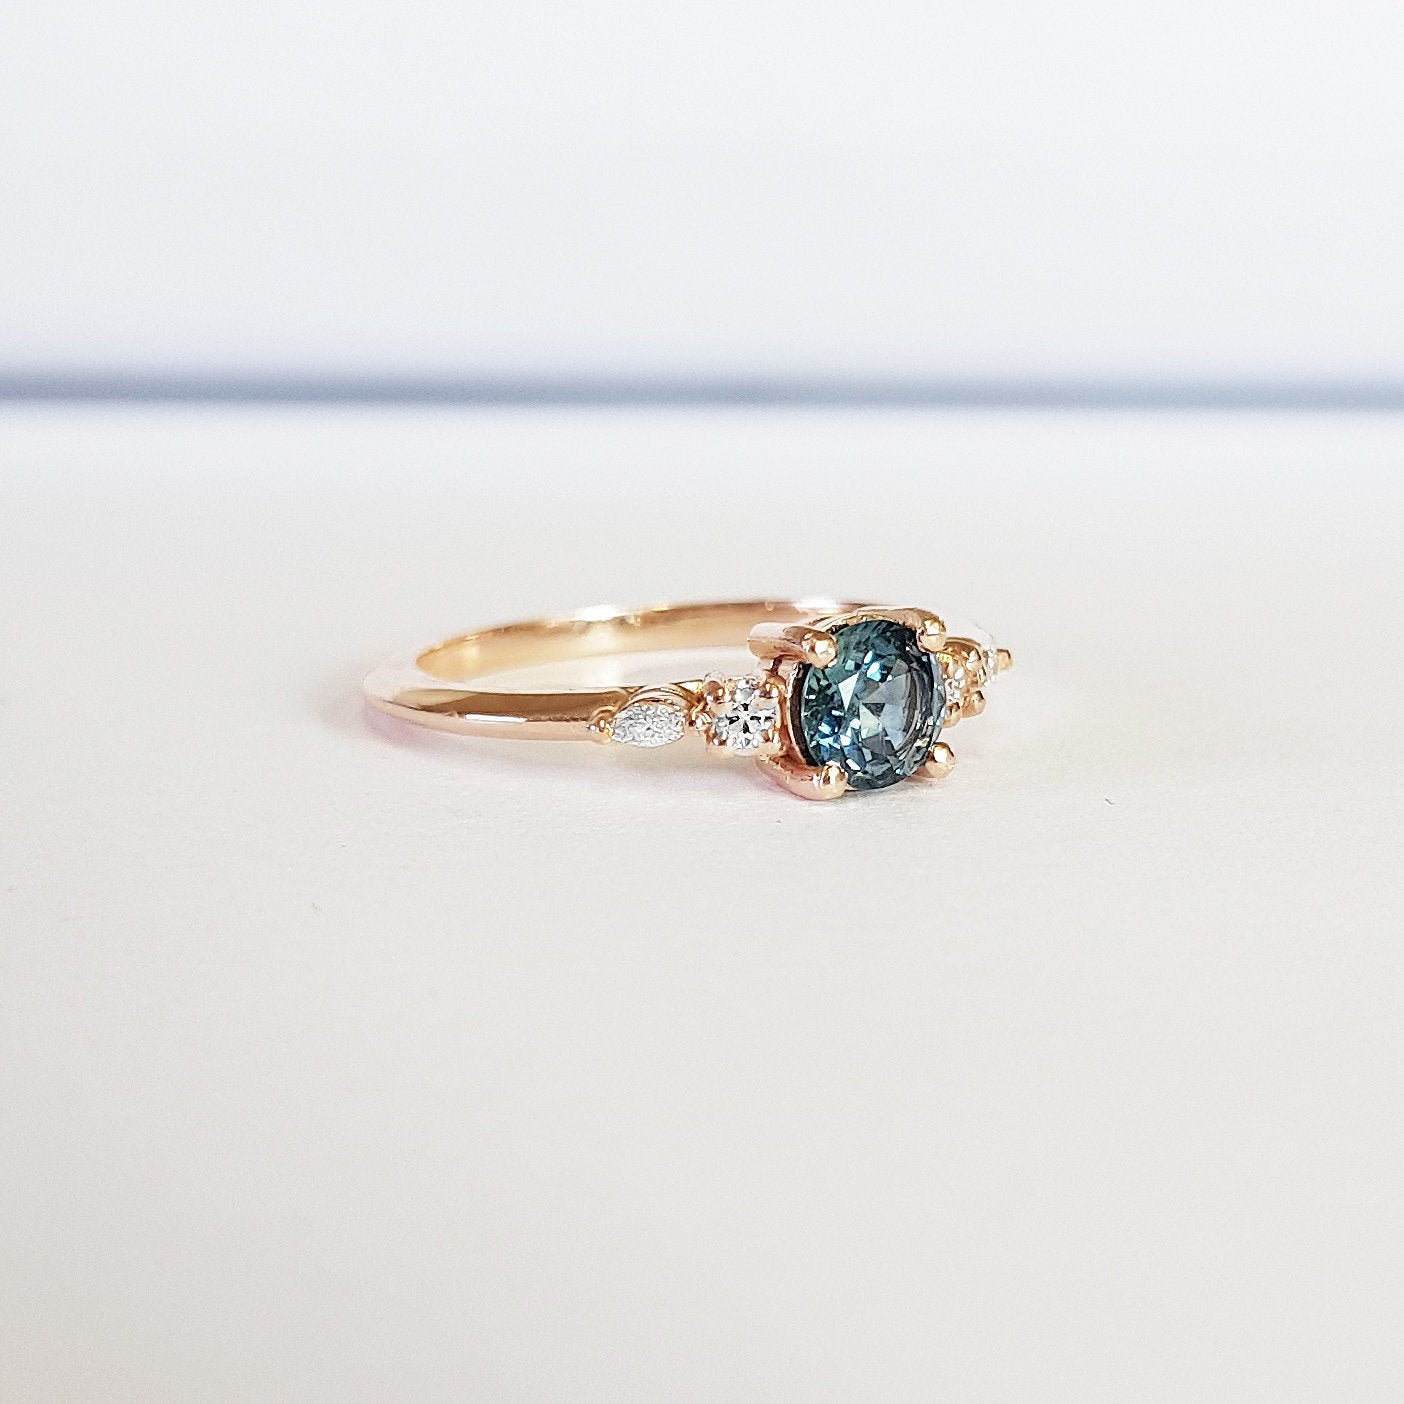 Teal Sapphire Engagement Ring Handmade In Rose White Yellow Gold With Diamonds Marquise 5 Stone Antique Inspired Aardvark Jewellery